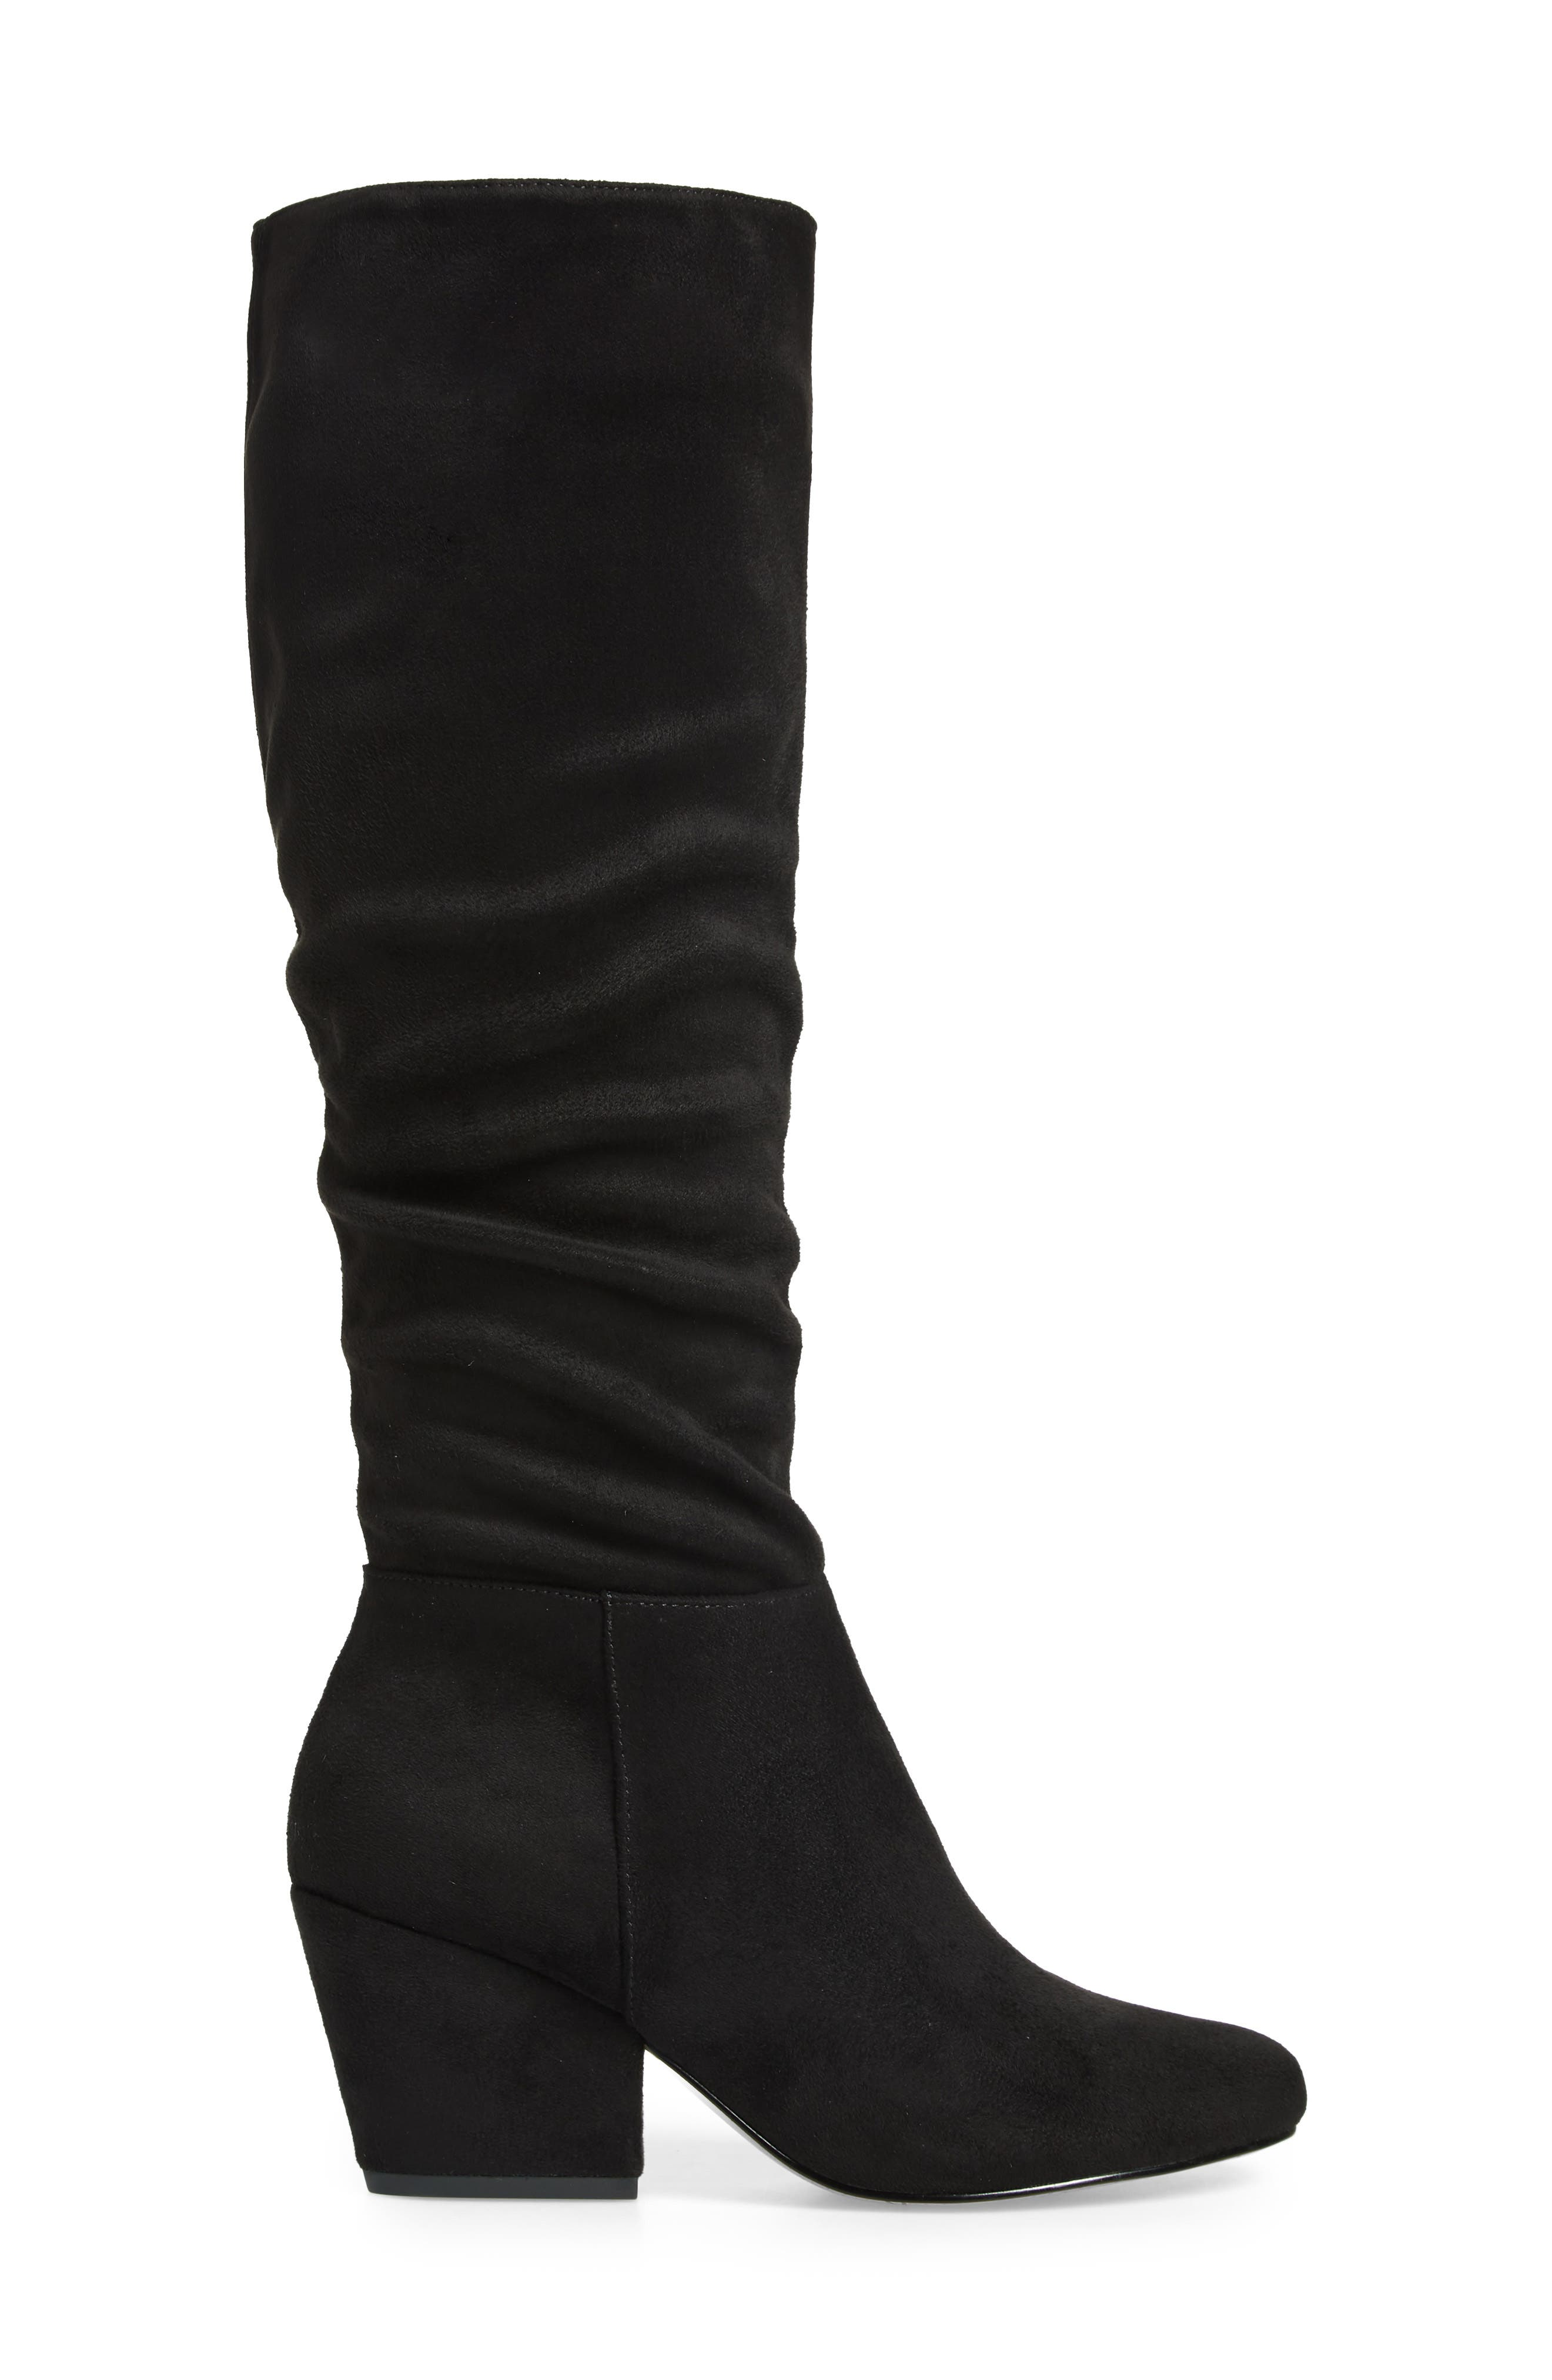 BELLA VITA, Karen II Knee High Slouch Boot, Alternate thumbnail 3, color, 018